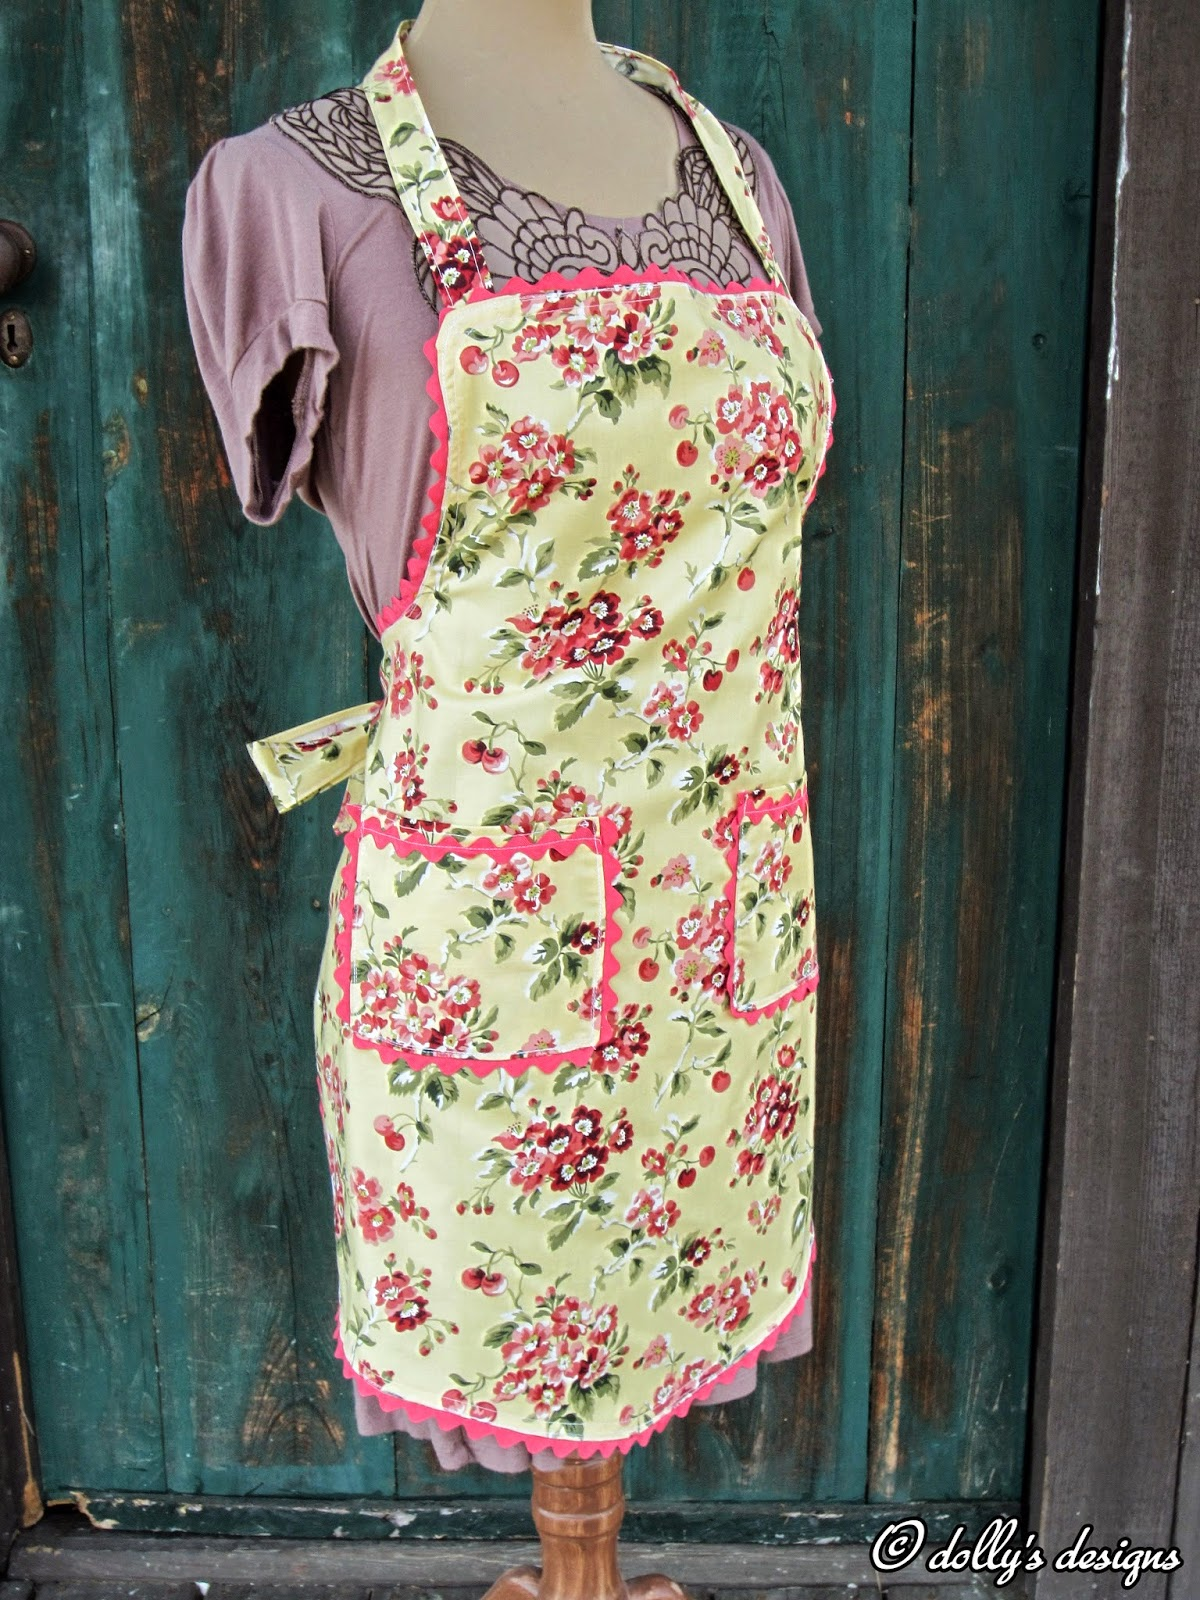 Blue apron interview - I Kept Seeing All These Great Aprons That Dolly Was Creating And When She Designed One Based On Her Grandmother Cora S Original Pattern I Jumped On It